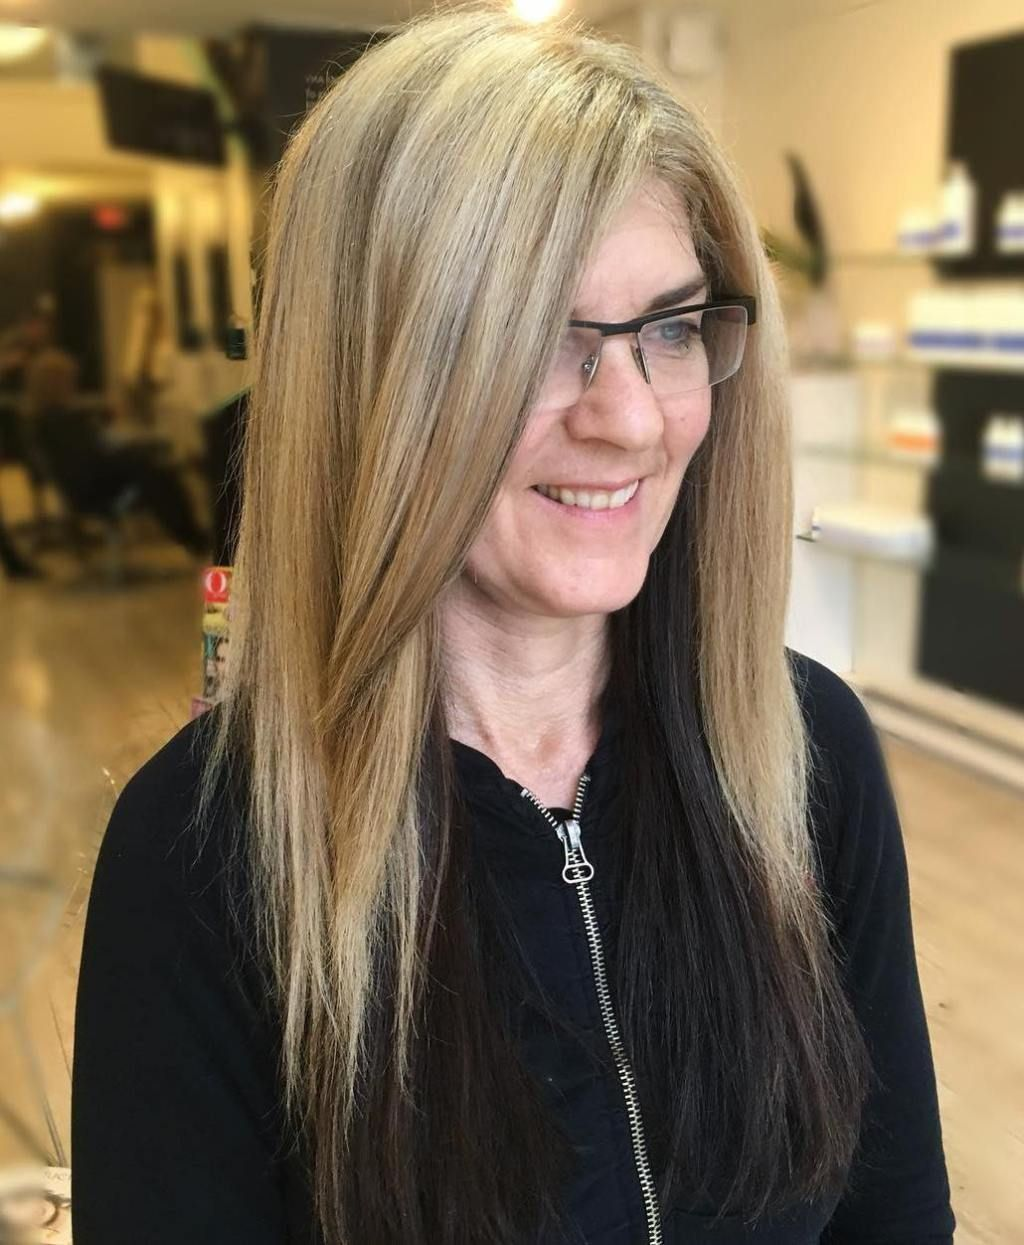 20 universally flattering hairstyles for women over 50